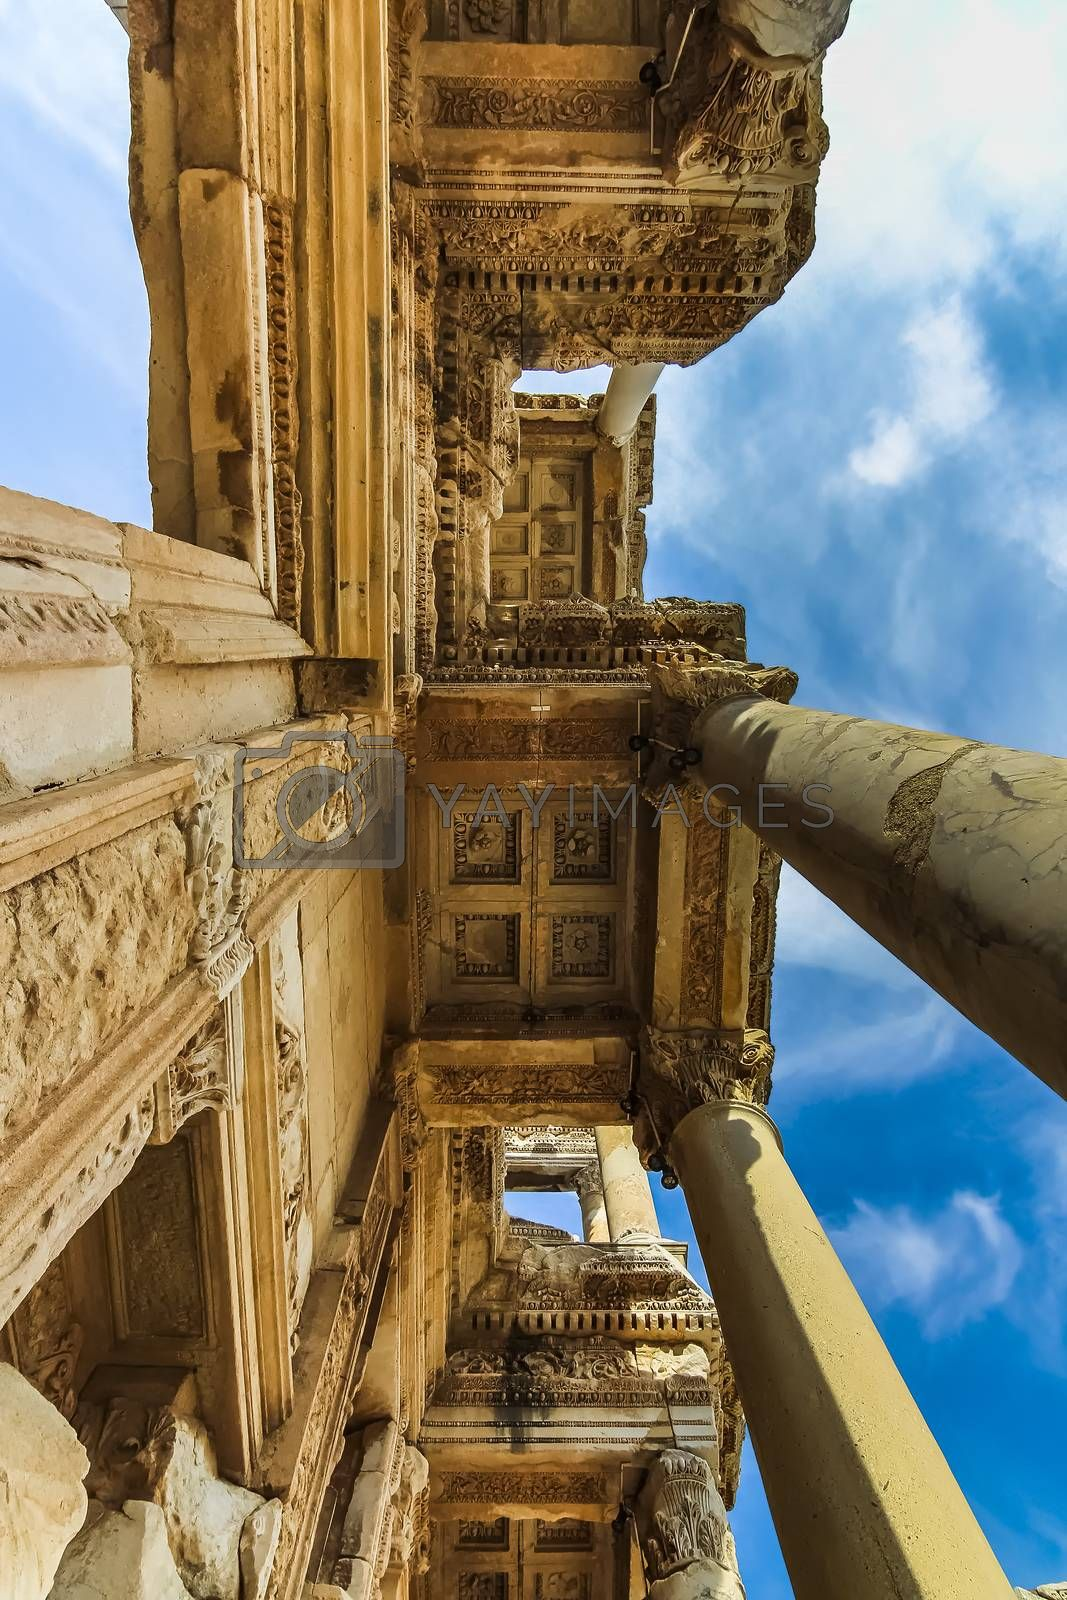 Bottom up view of the facade of Celsus Library at Ephesus